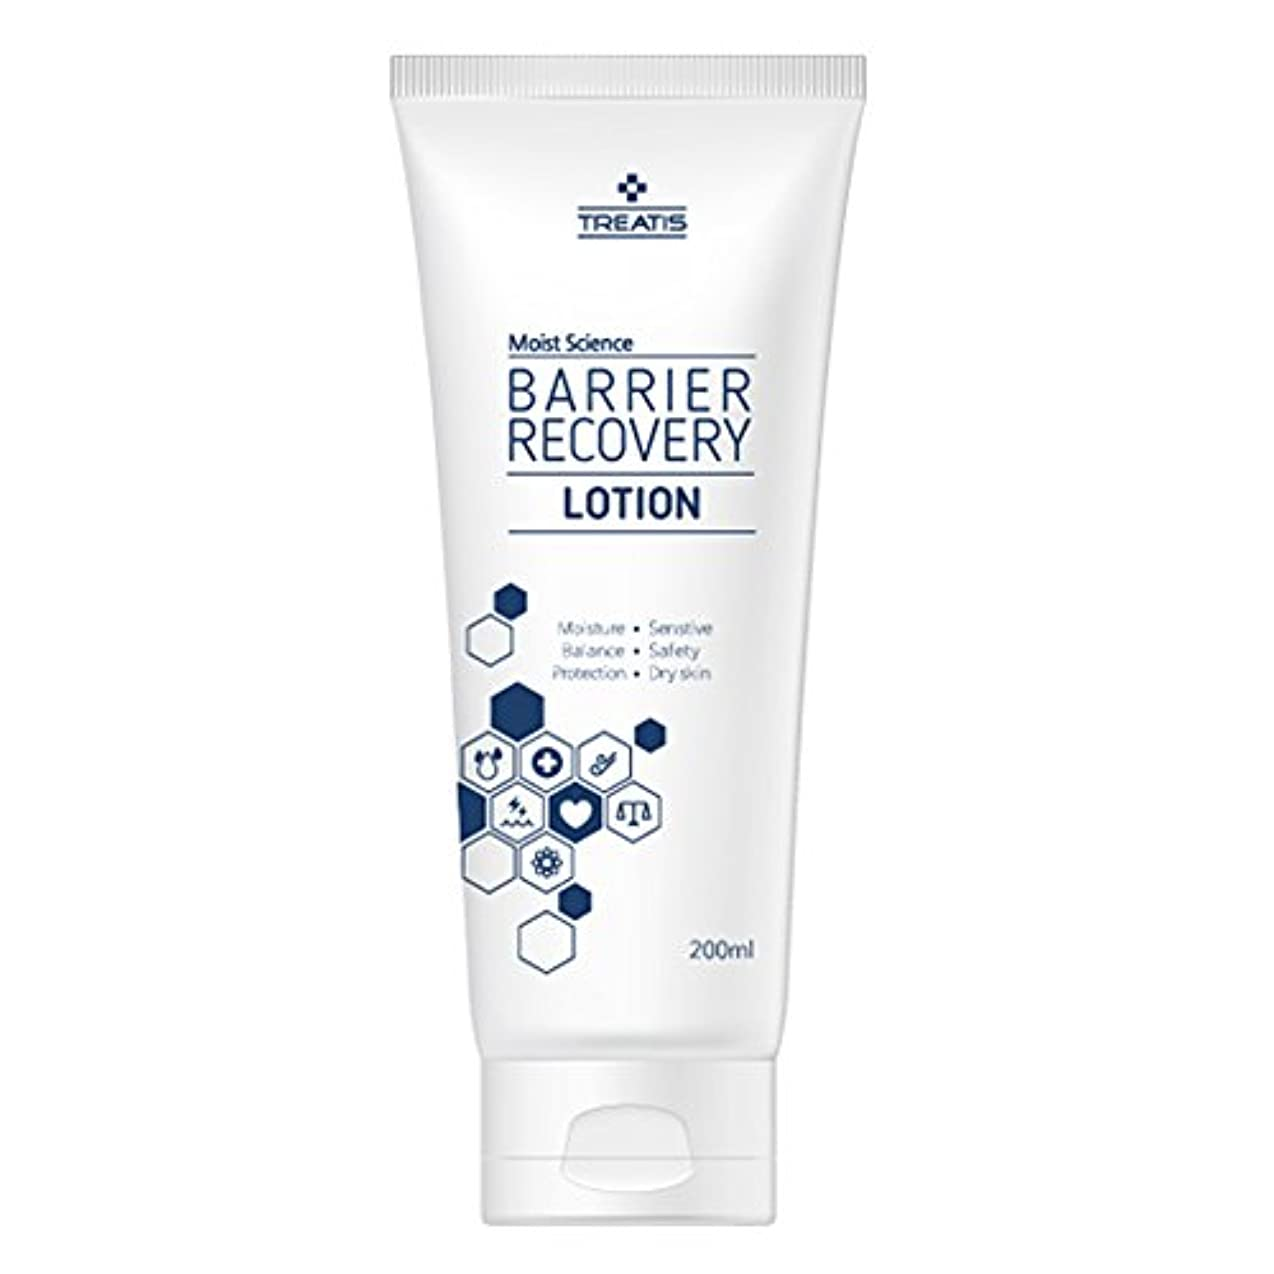 保安急降下急降下Treatis barrier recovery lotion 7oz (200ml)/Moisture, Senstive, Balance, Safty, Protection, Dry skin [並行輸入品]